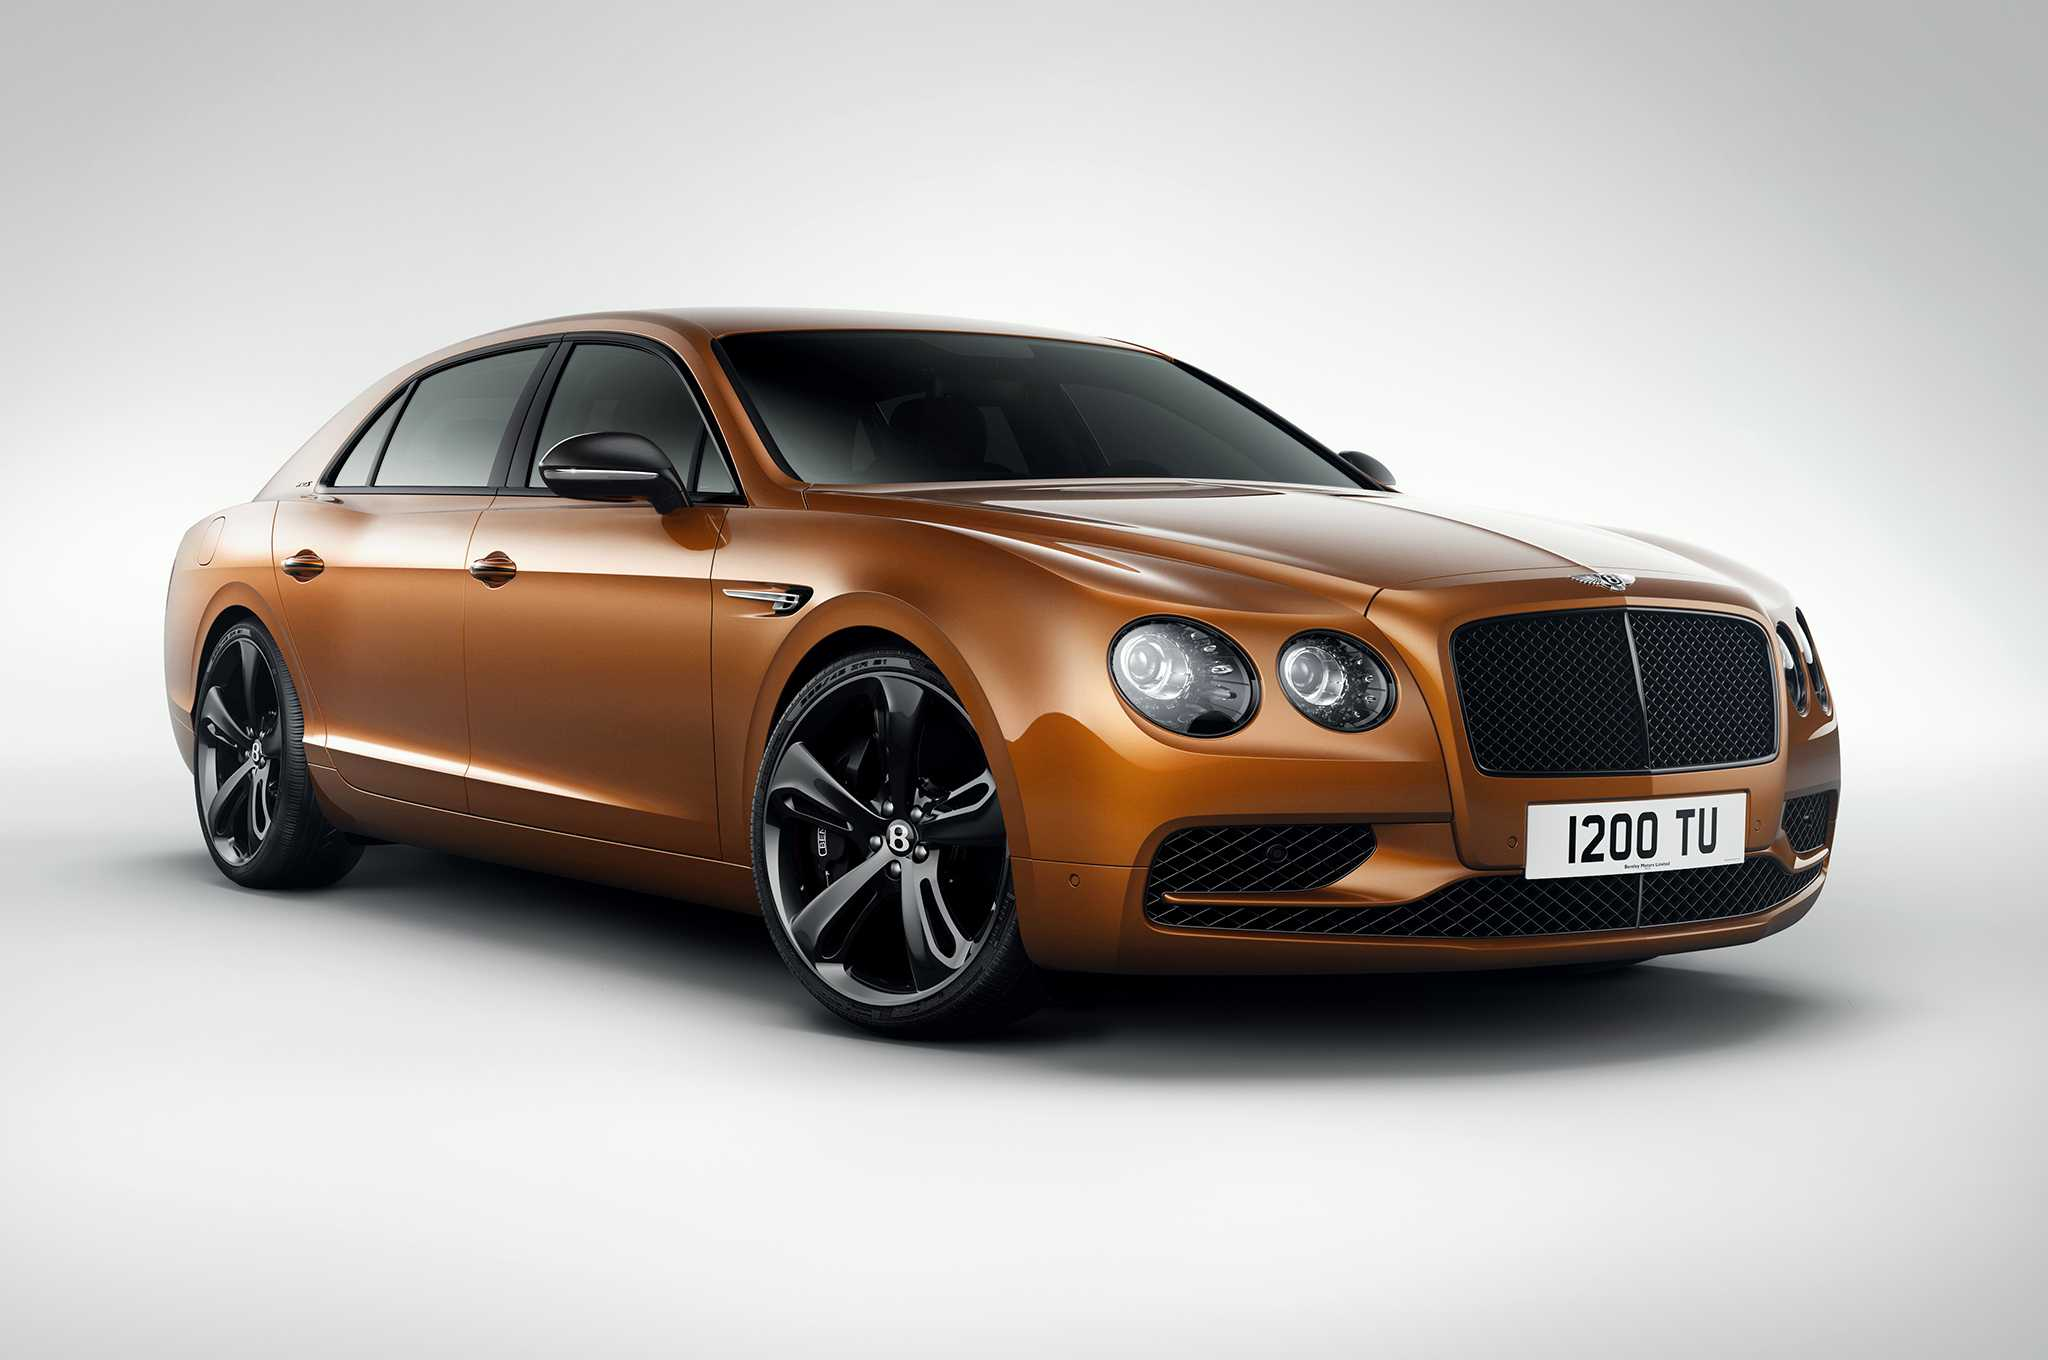 2017 Bentley Flying Spur W12S Hits Top Speed Of 200 MPH